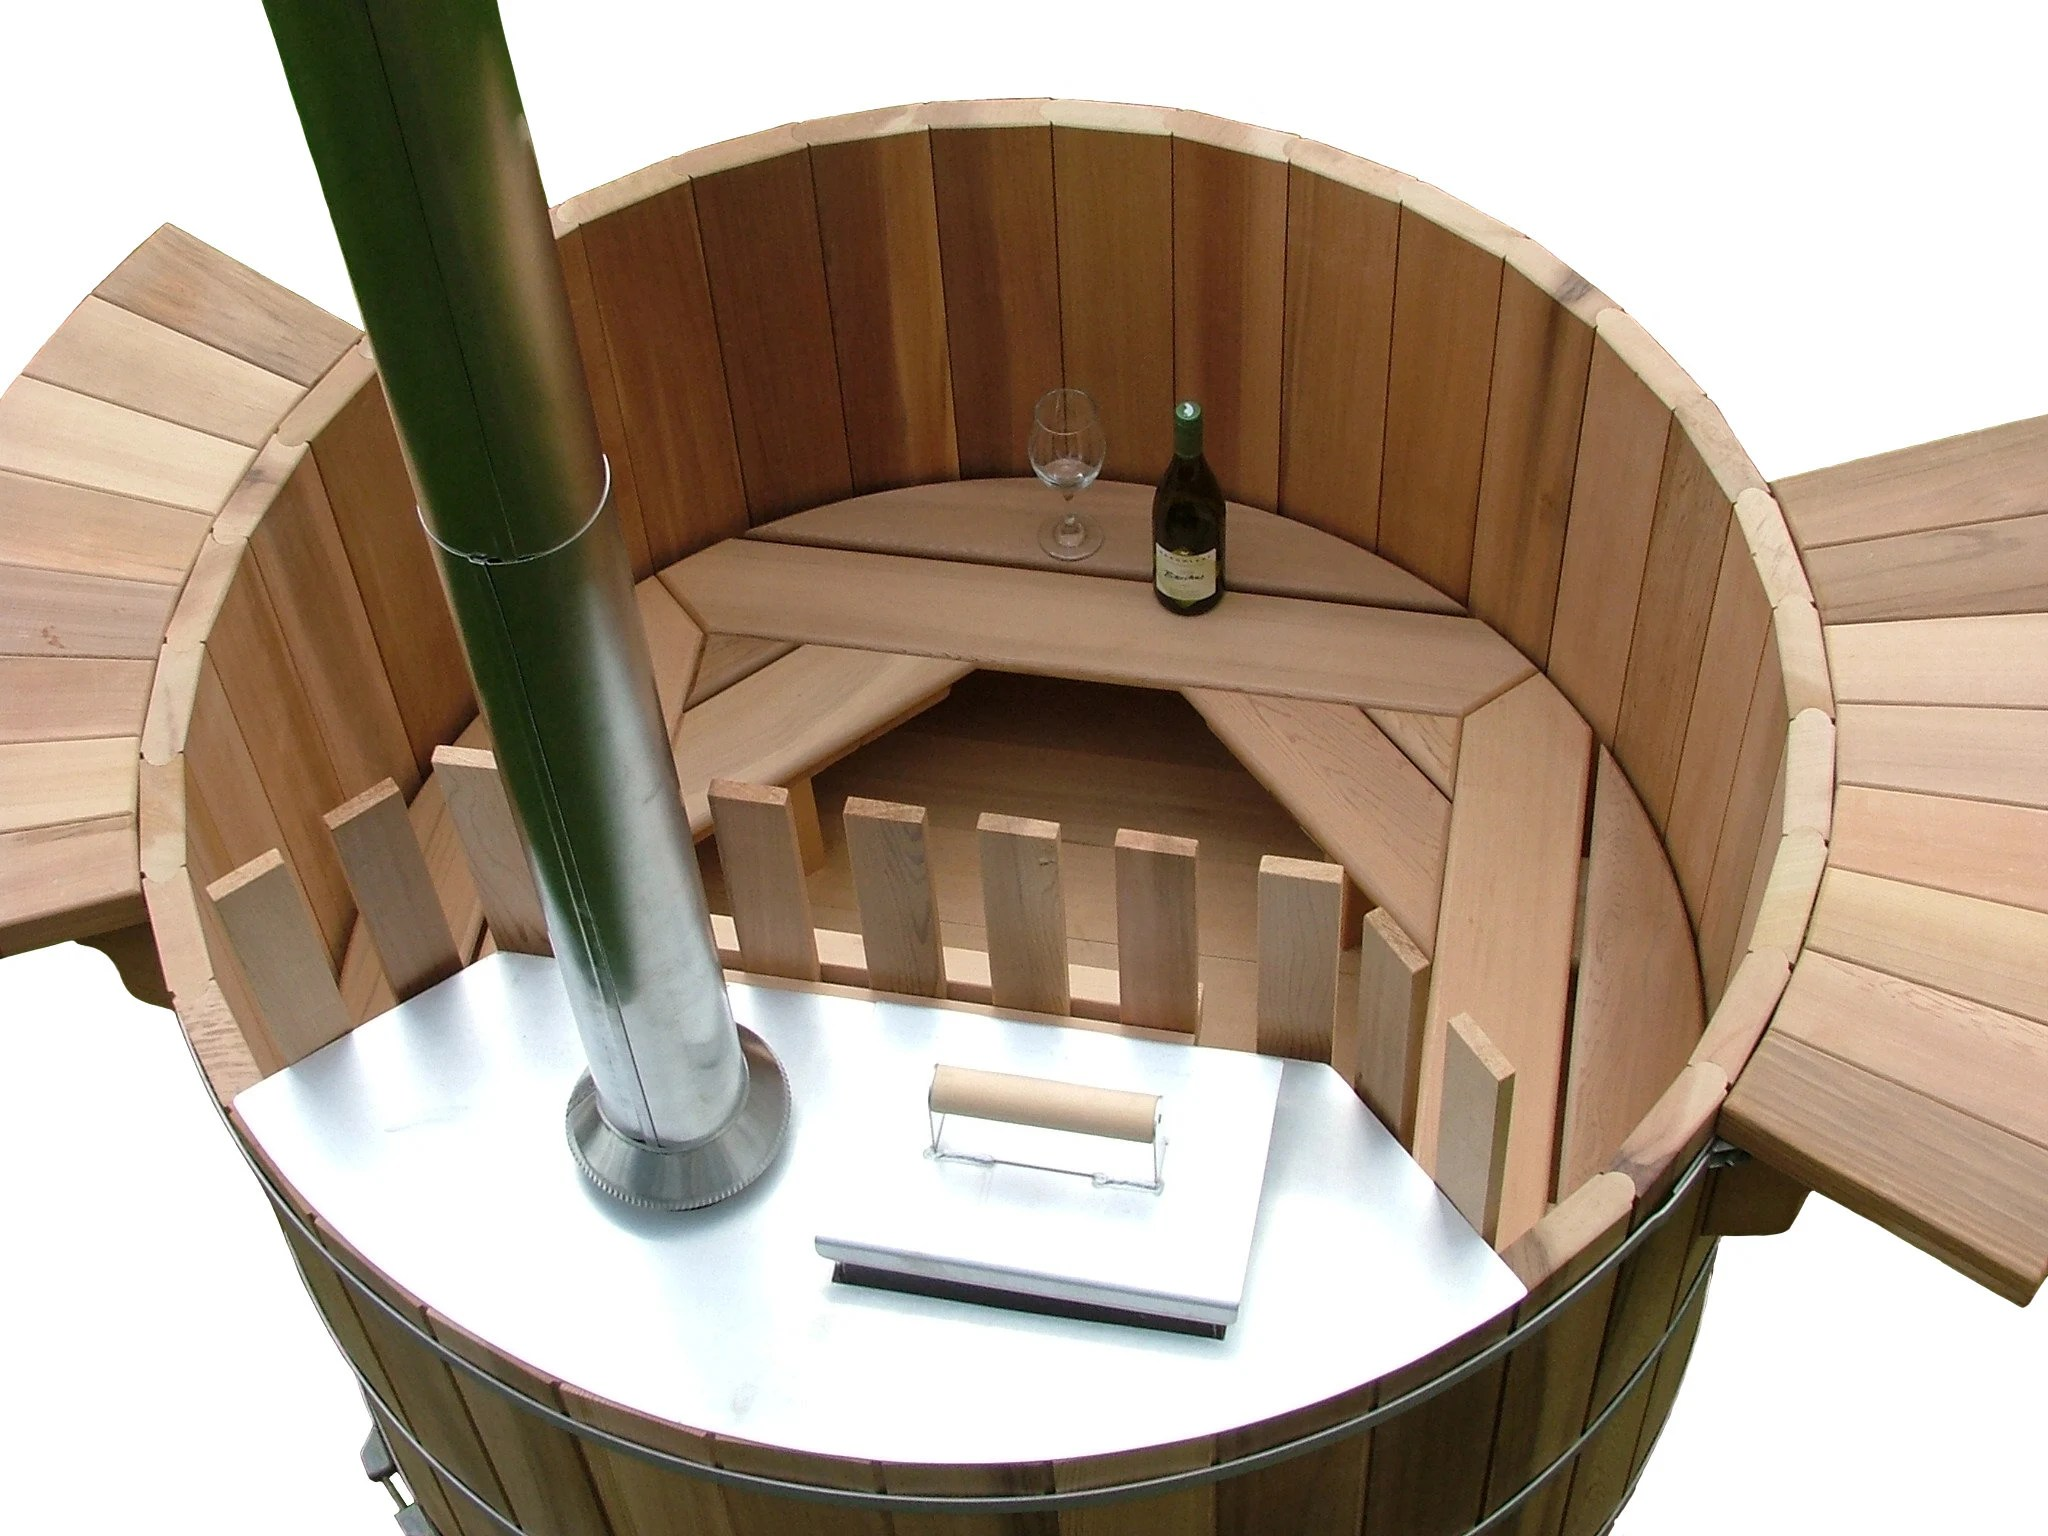 Cedar Wood Hot Tub Plans Diy Outdoor Spa Bath Relax Etsy